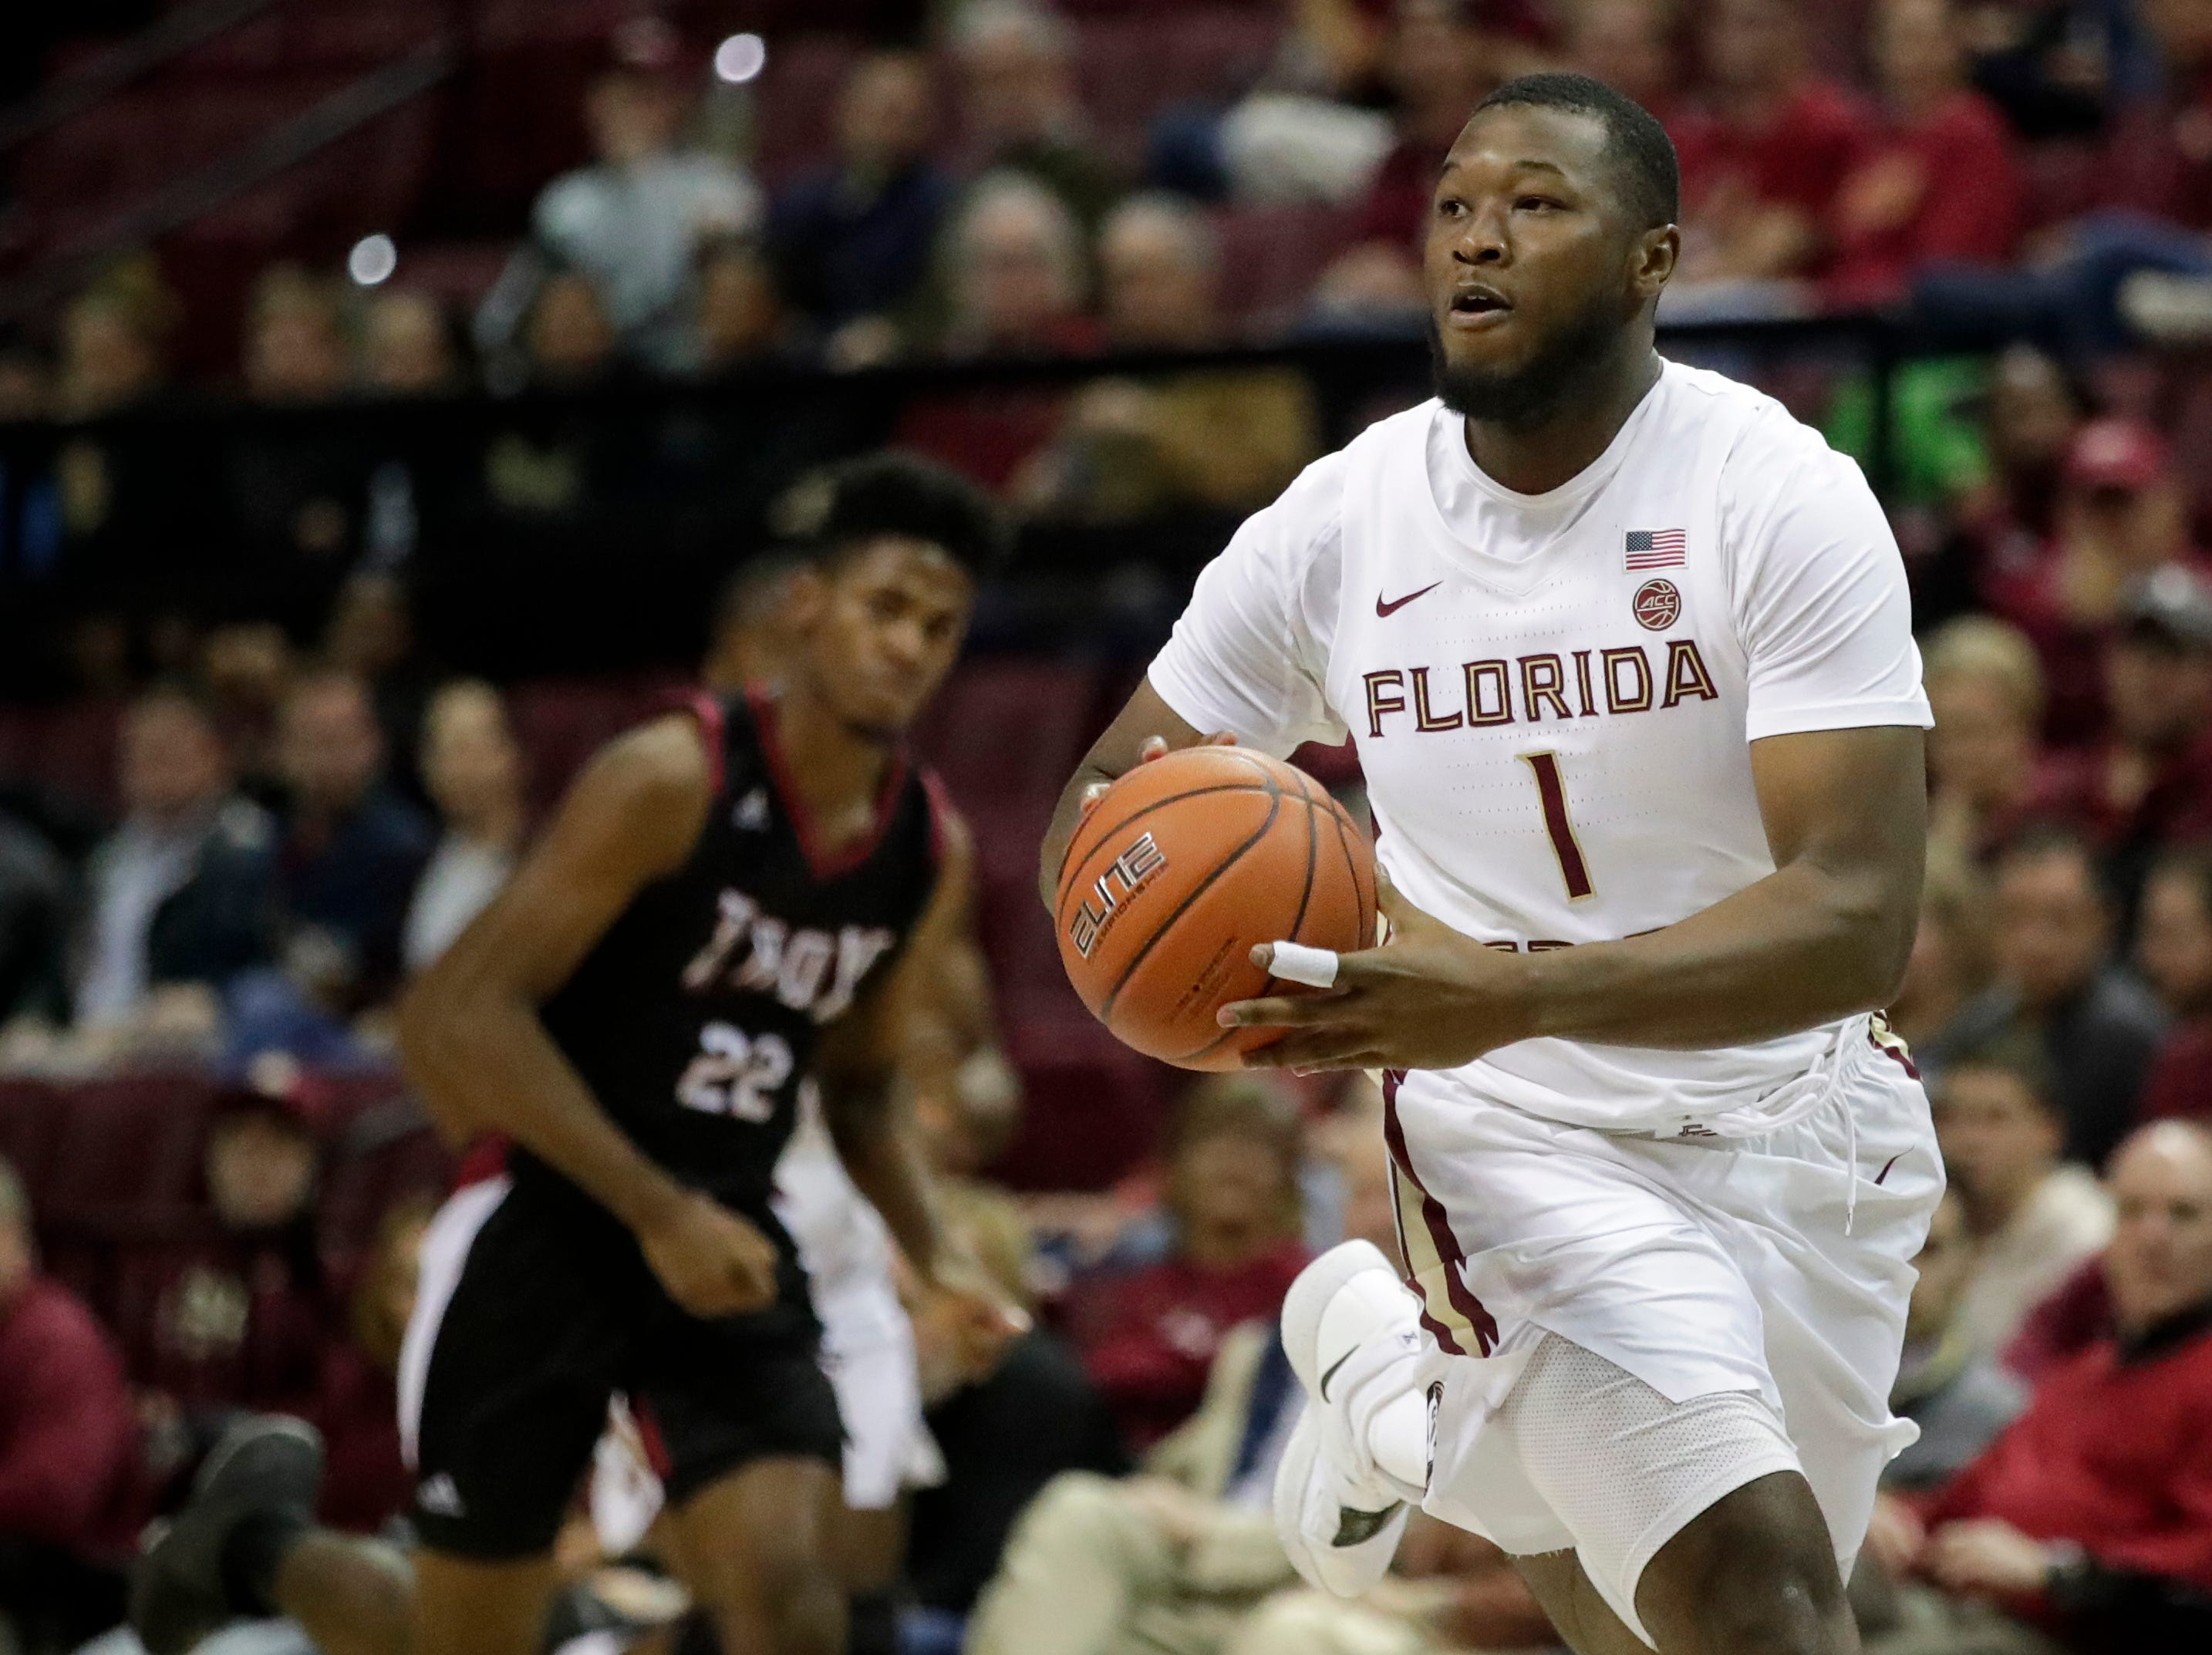 Florida State Seminoles forward Raiquan Gray (1) passes the ball during a game between FSU and Troy University at Donald L. Tucker Civic Center Monday, Dec. 3, 2018.